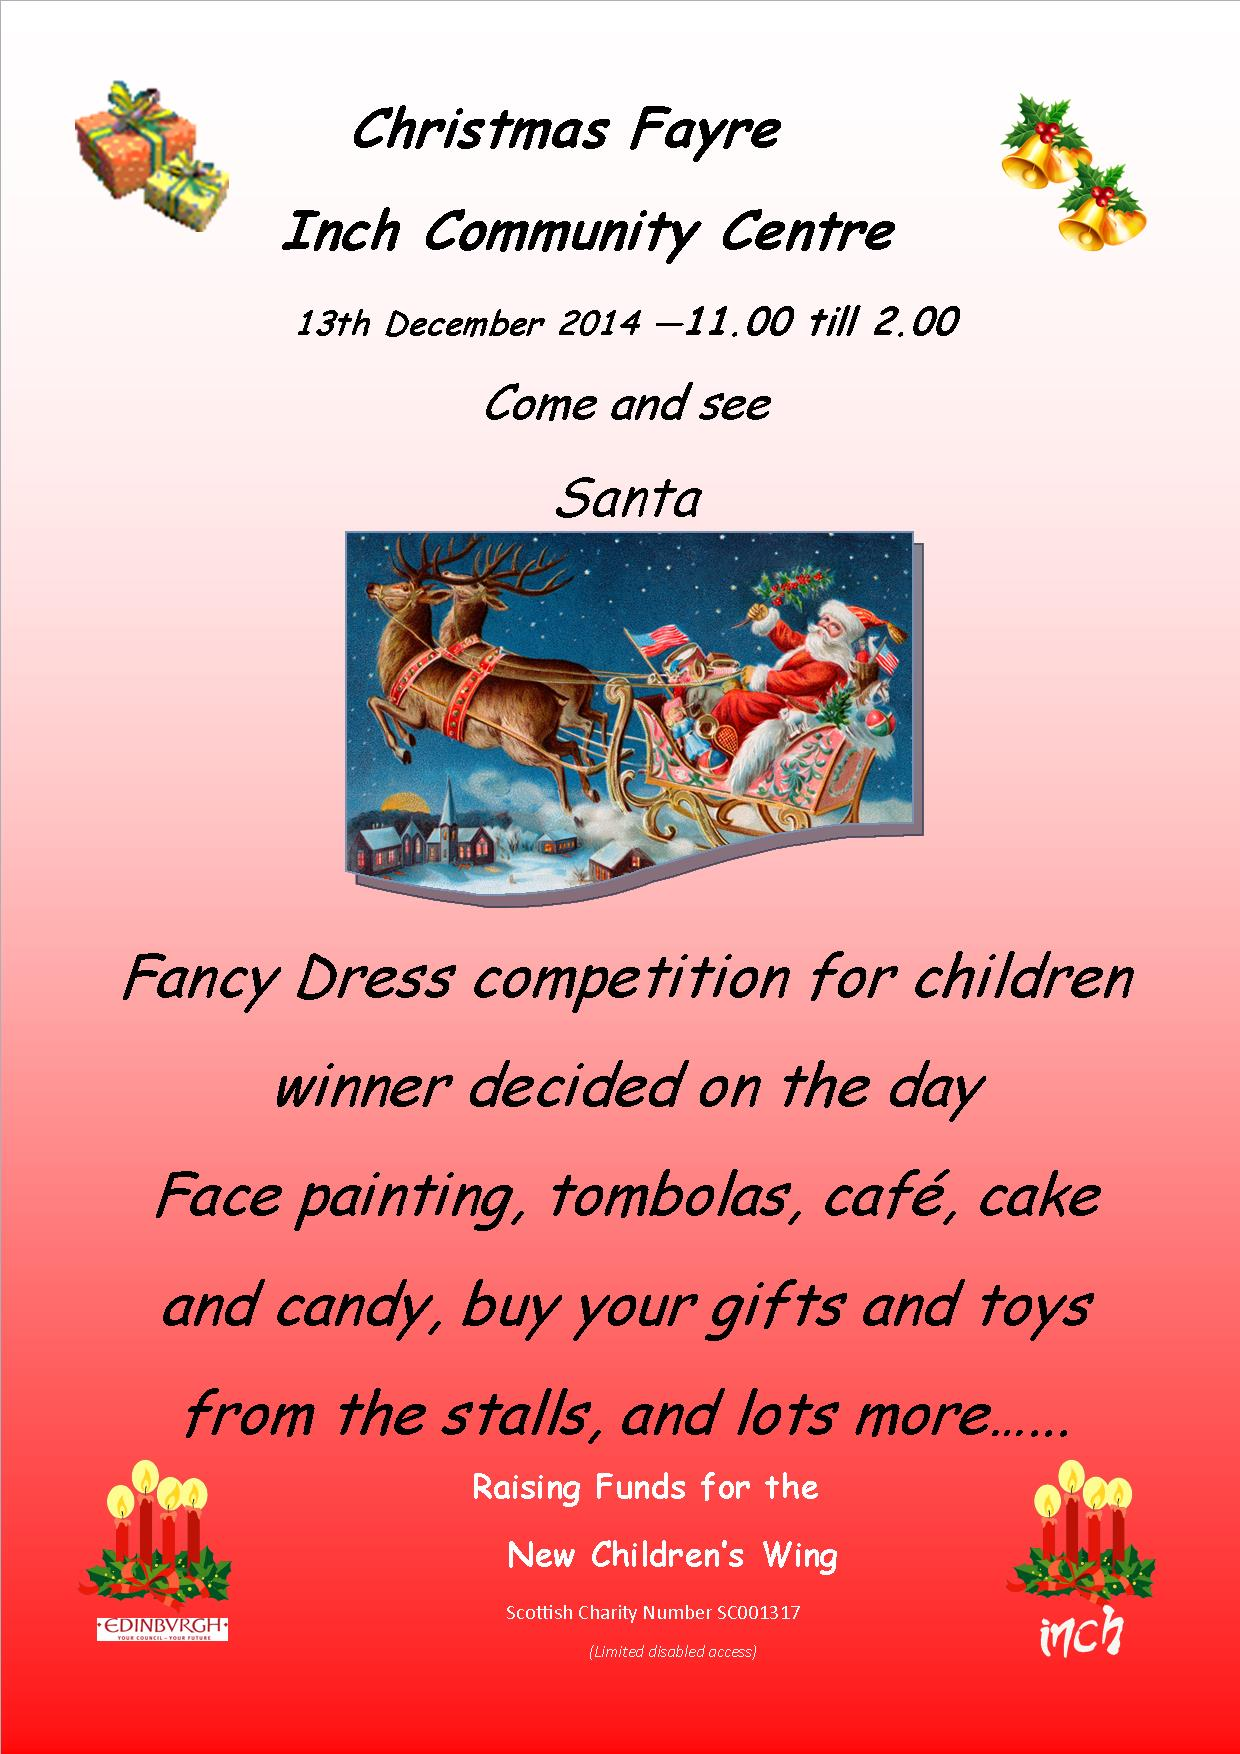 Christmas Fayre A4 Poster